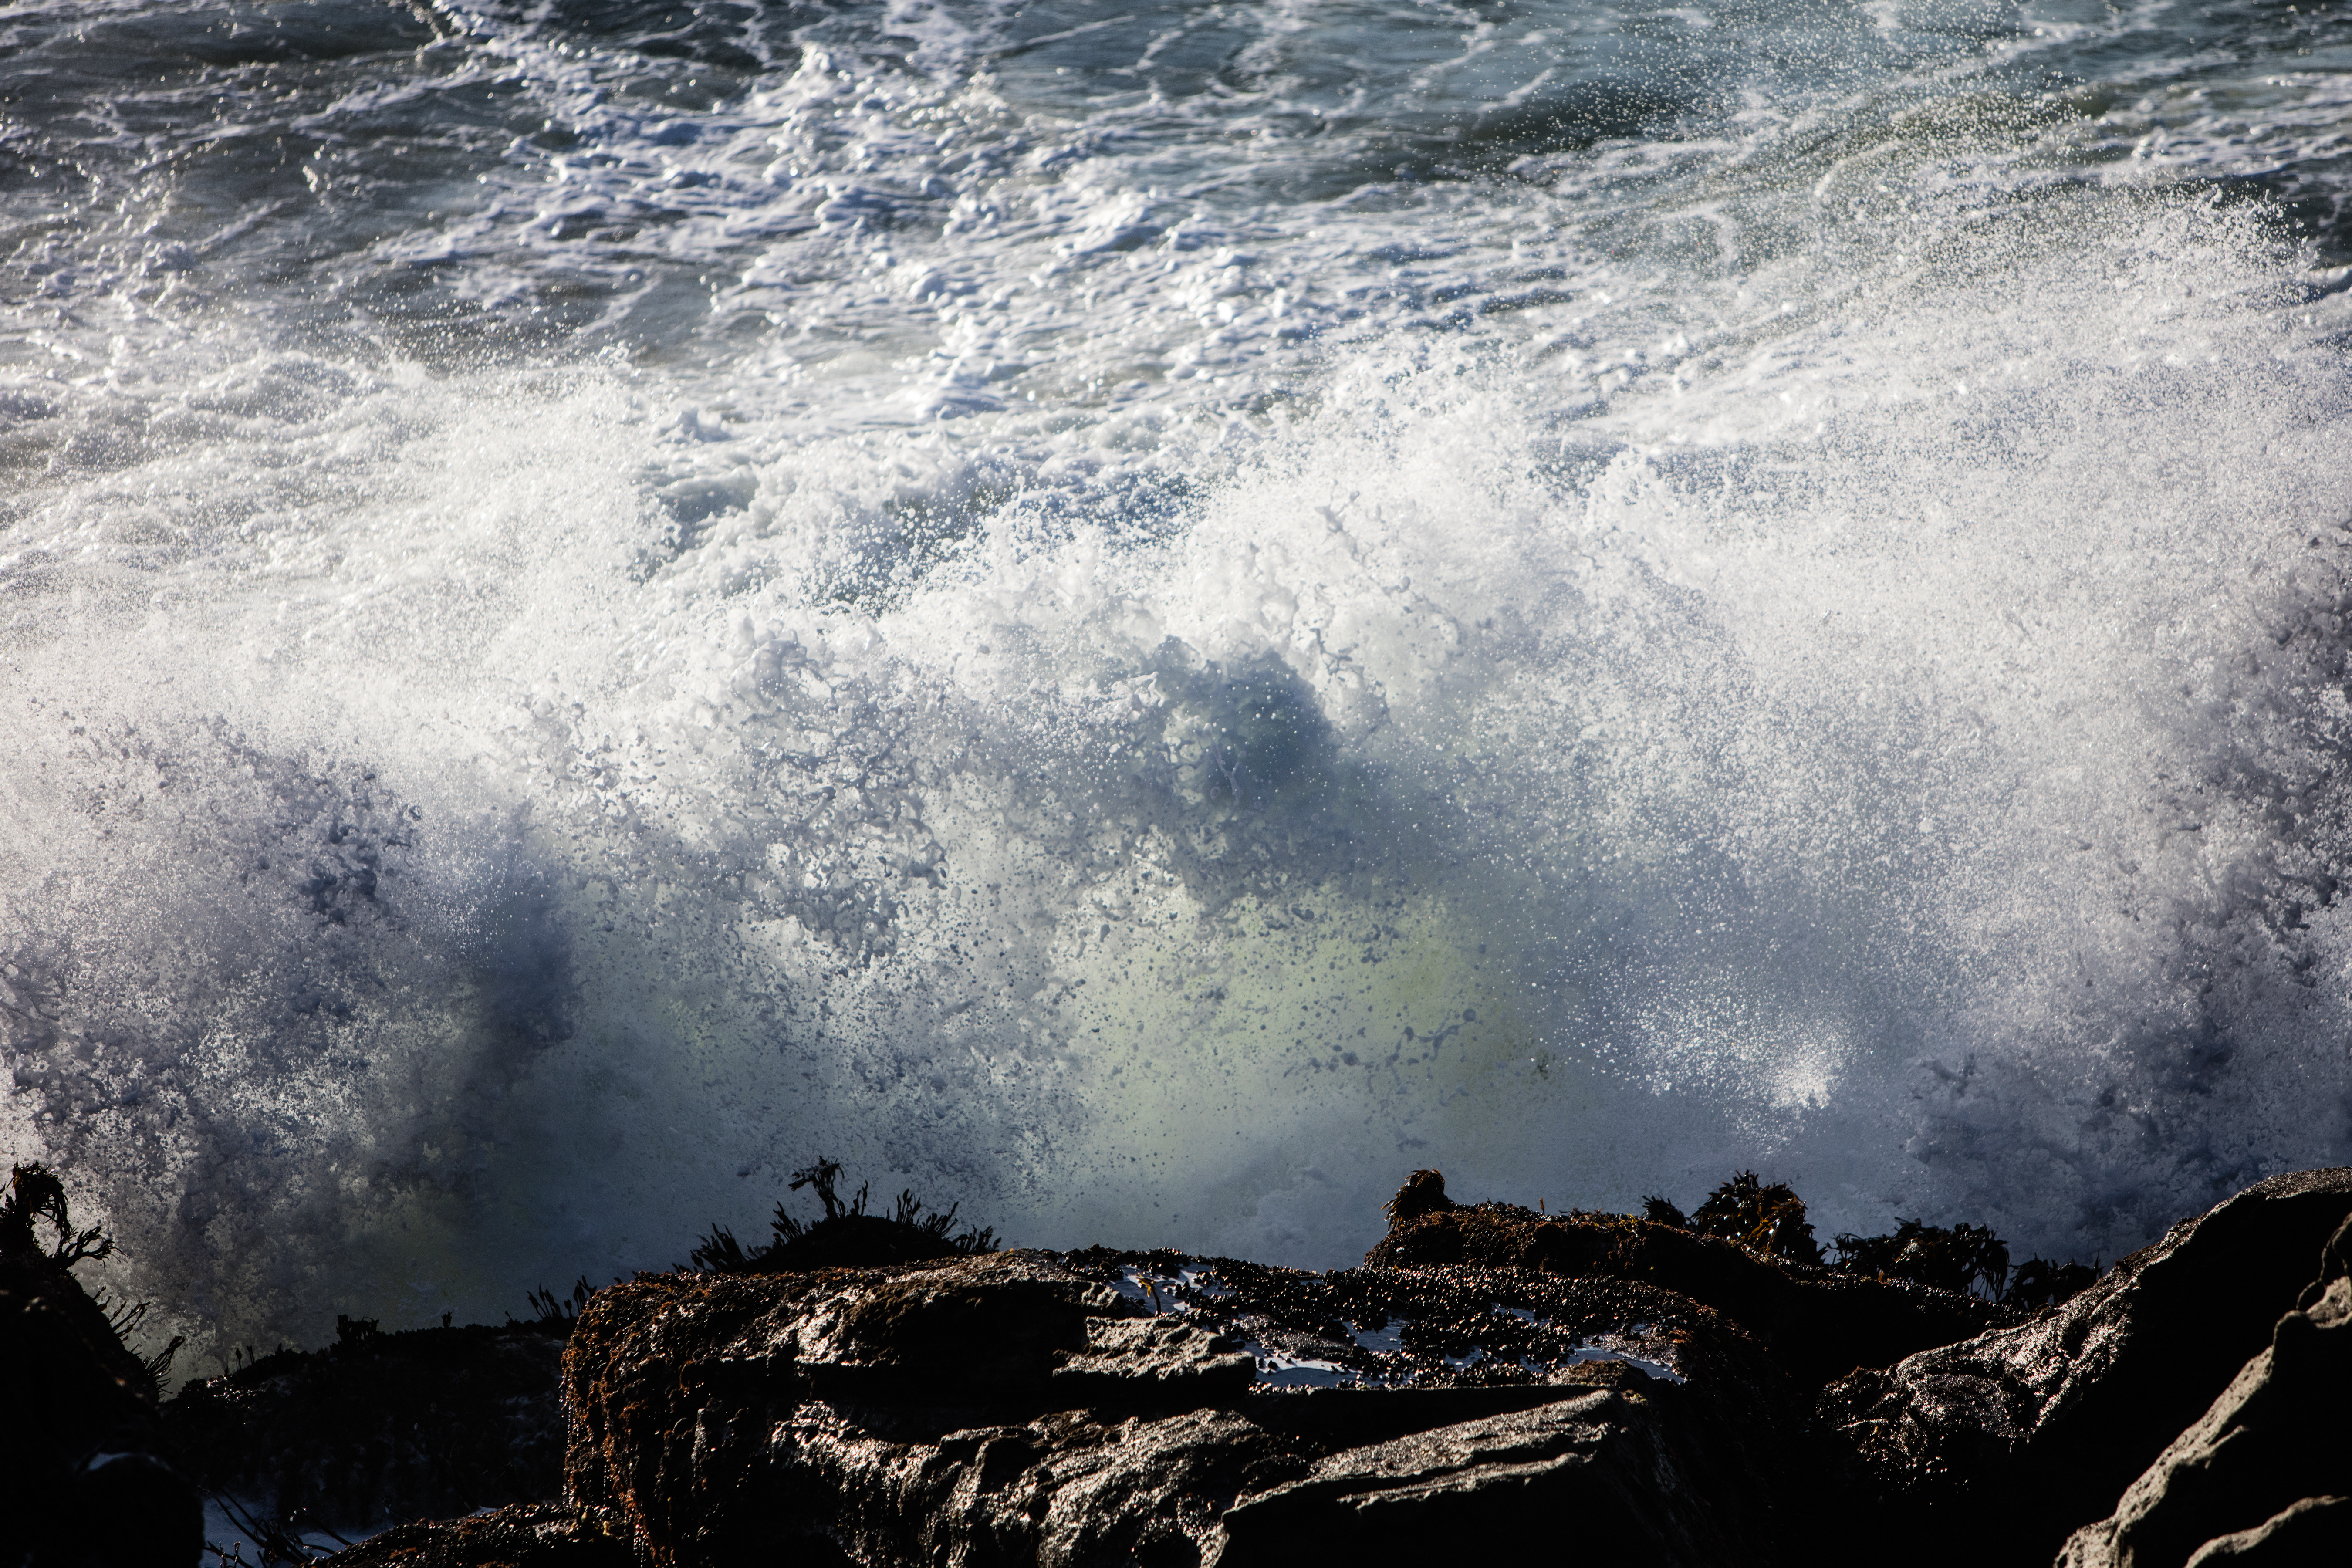 Dangerous 50-foot waves forecast for Bay Area beaches this weekend